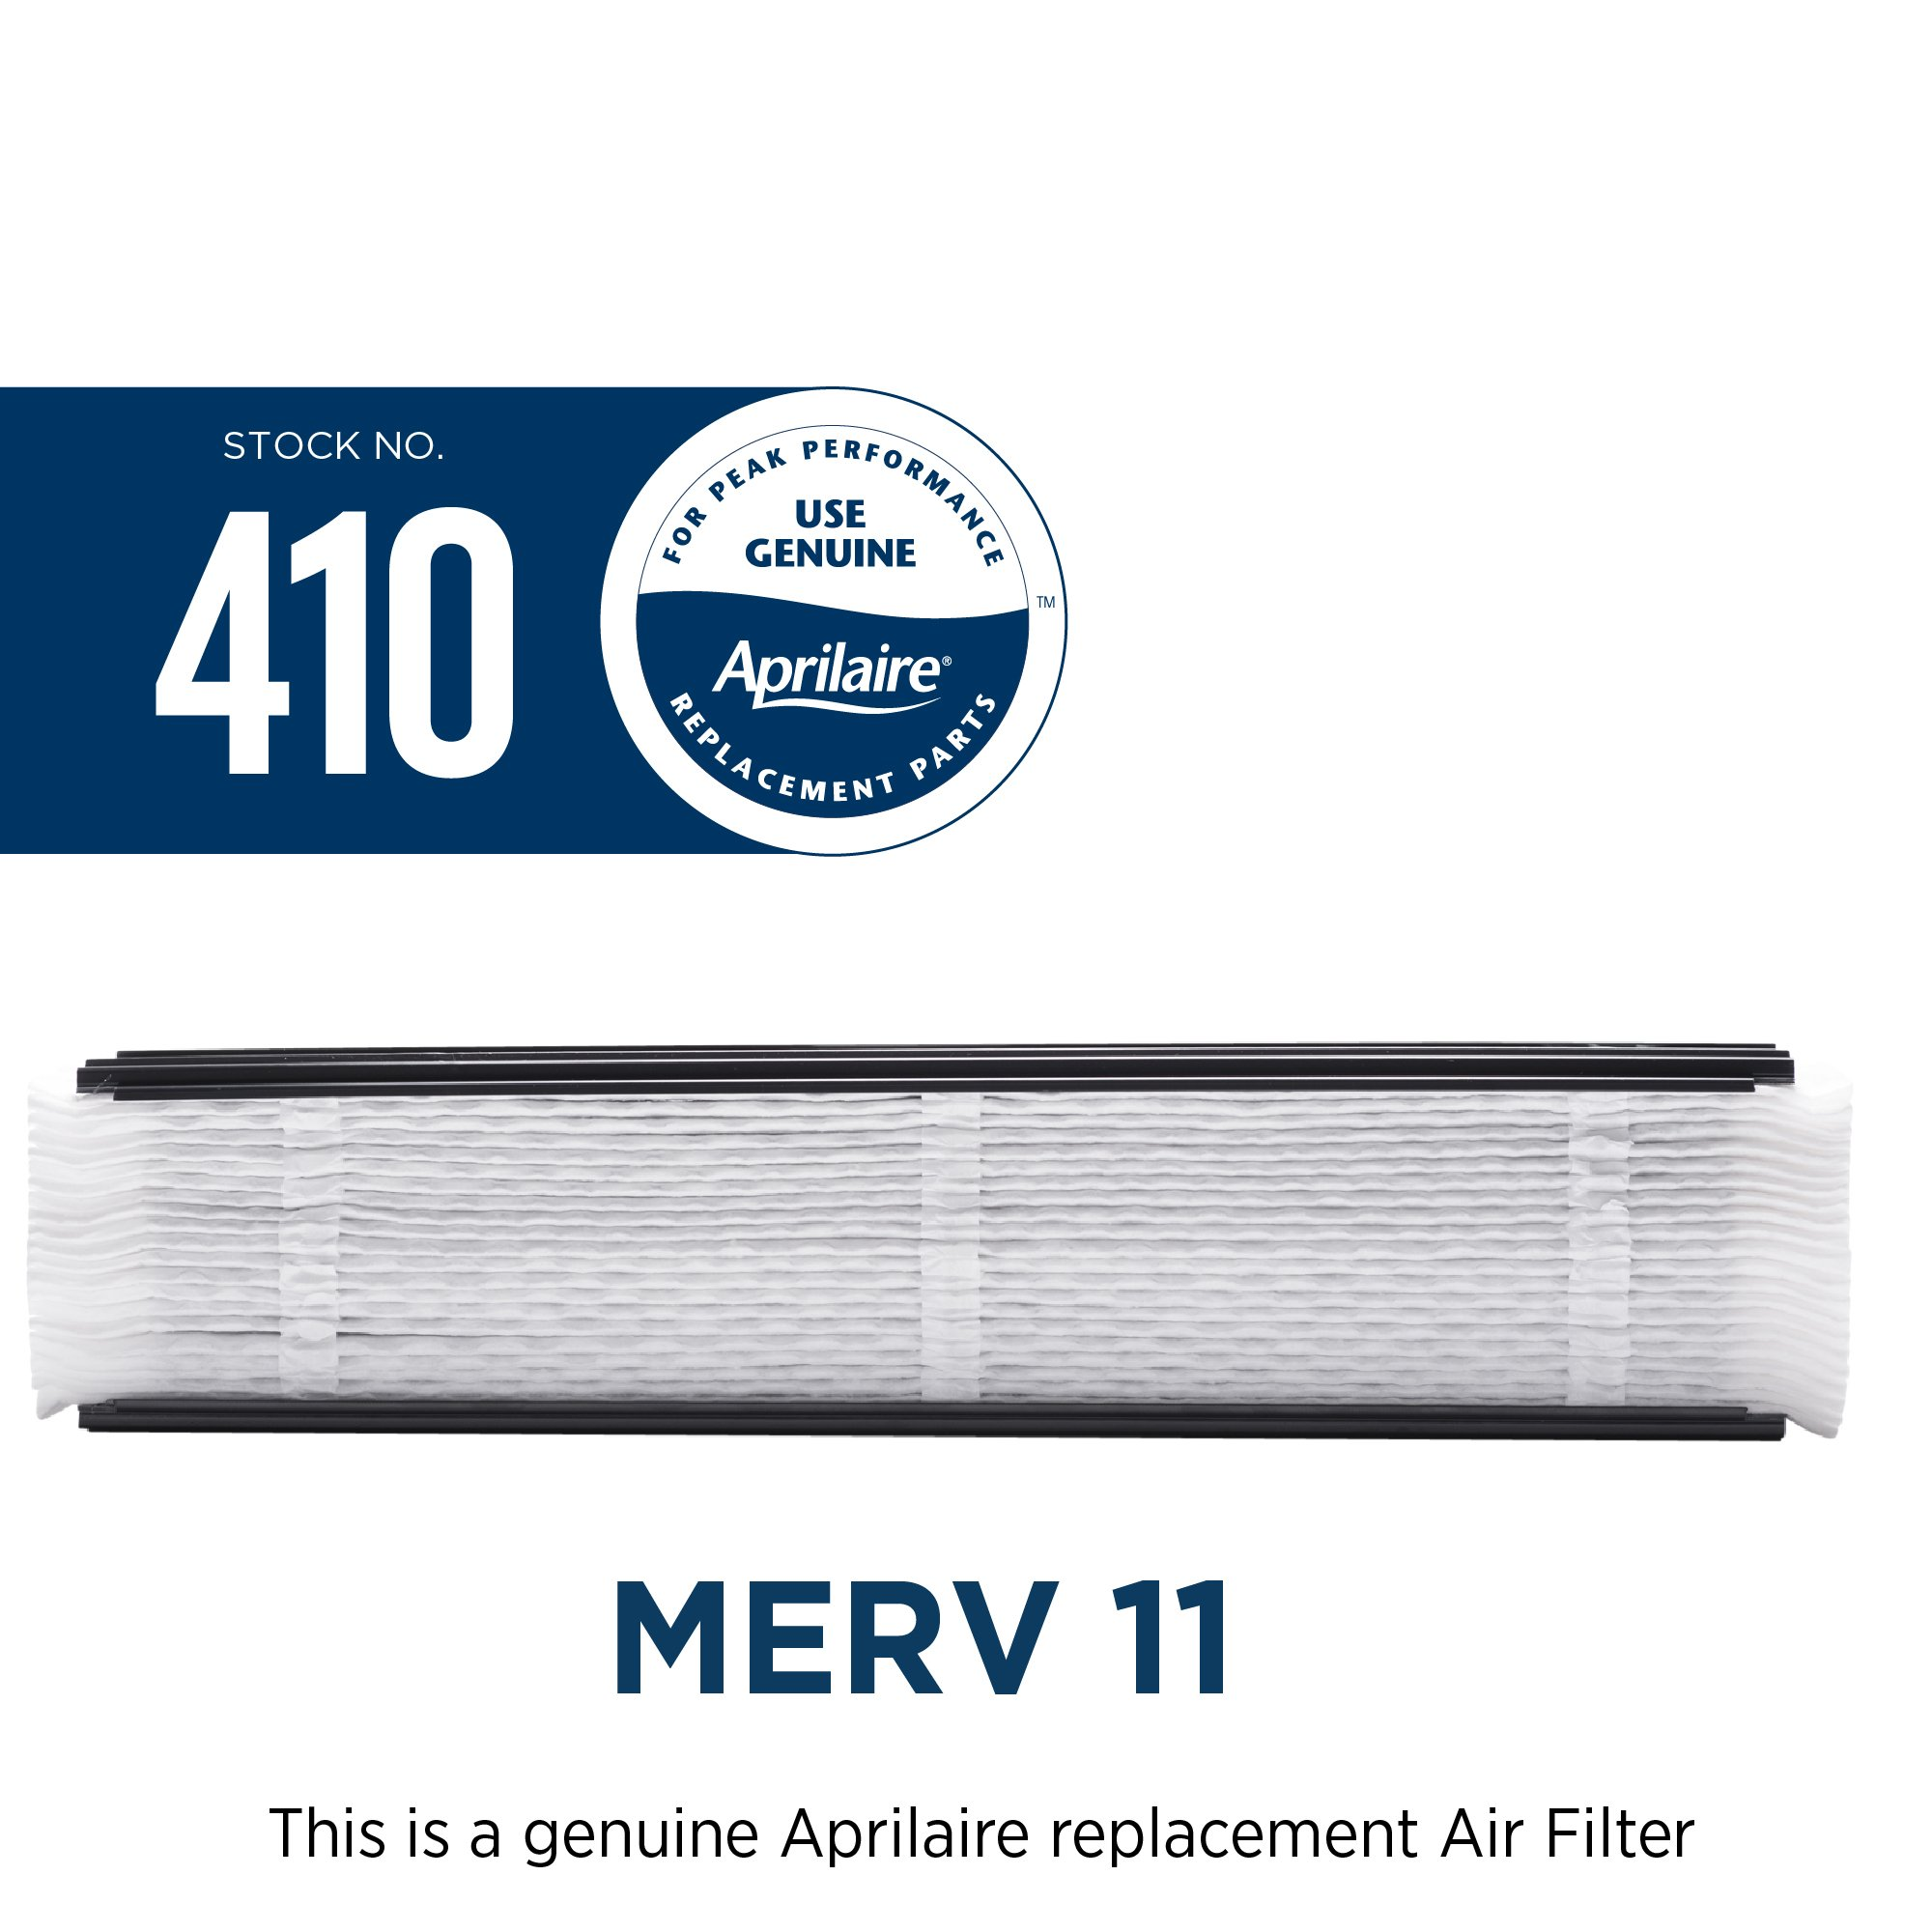 Aprilaire 410 Air Filter 8 Pack for Air Purifier Models 1410, 1610, 2410, 3410, 4400 by Aprilaire (Image #3)